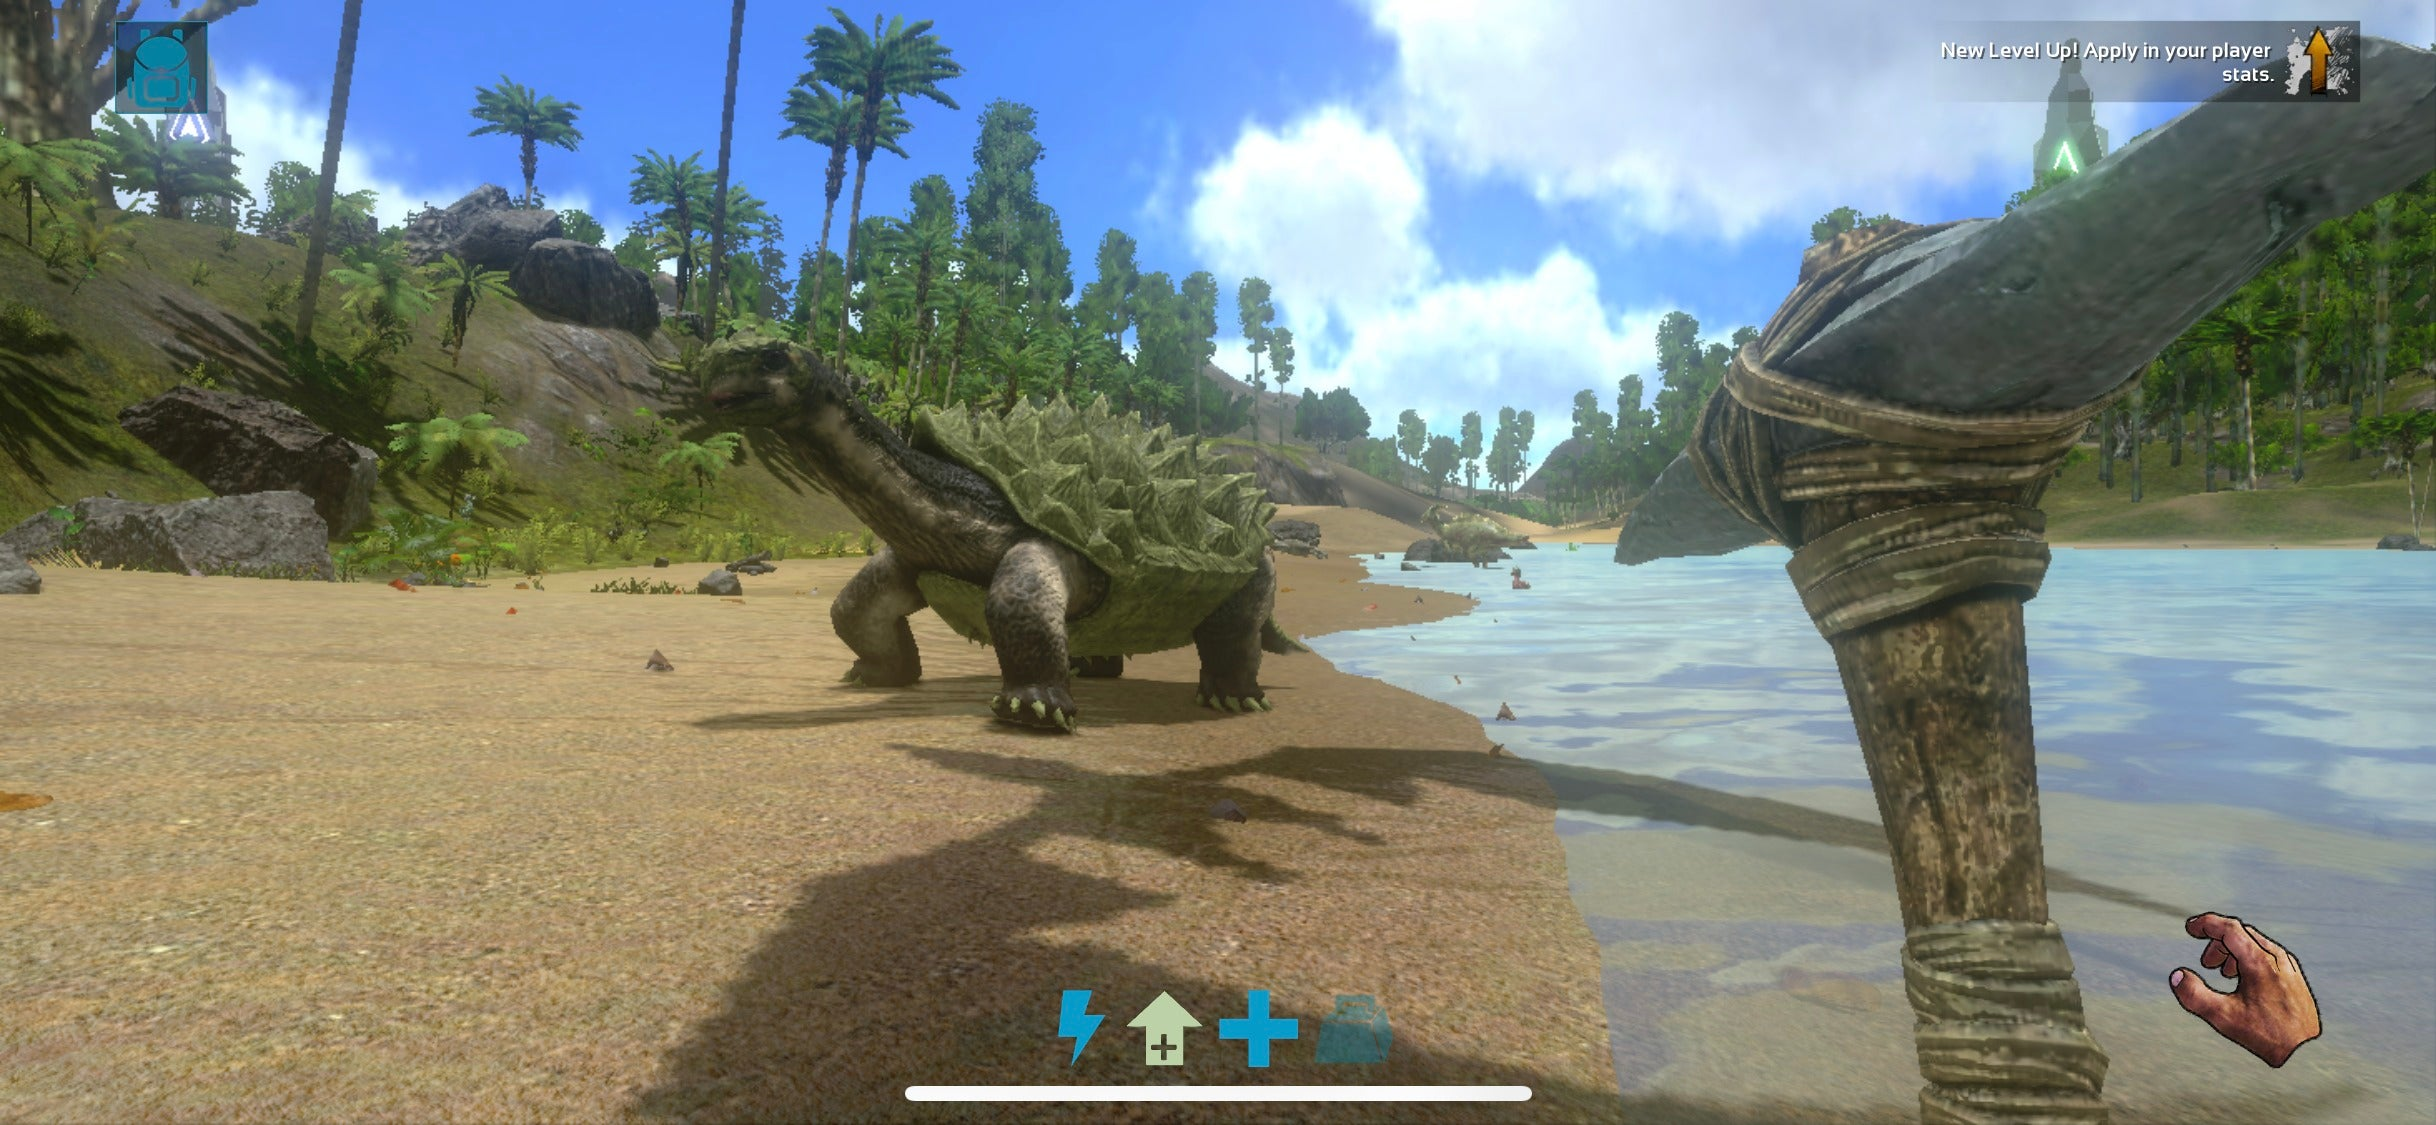 The 10 iPhone and iPad games you need to play from June 2018 | Macworld